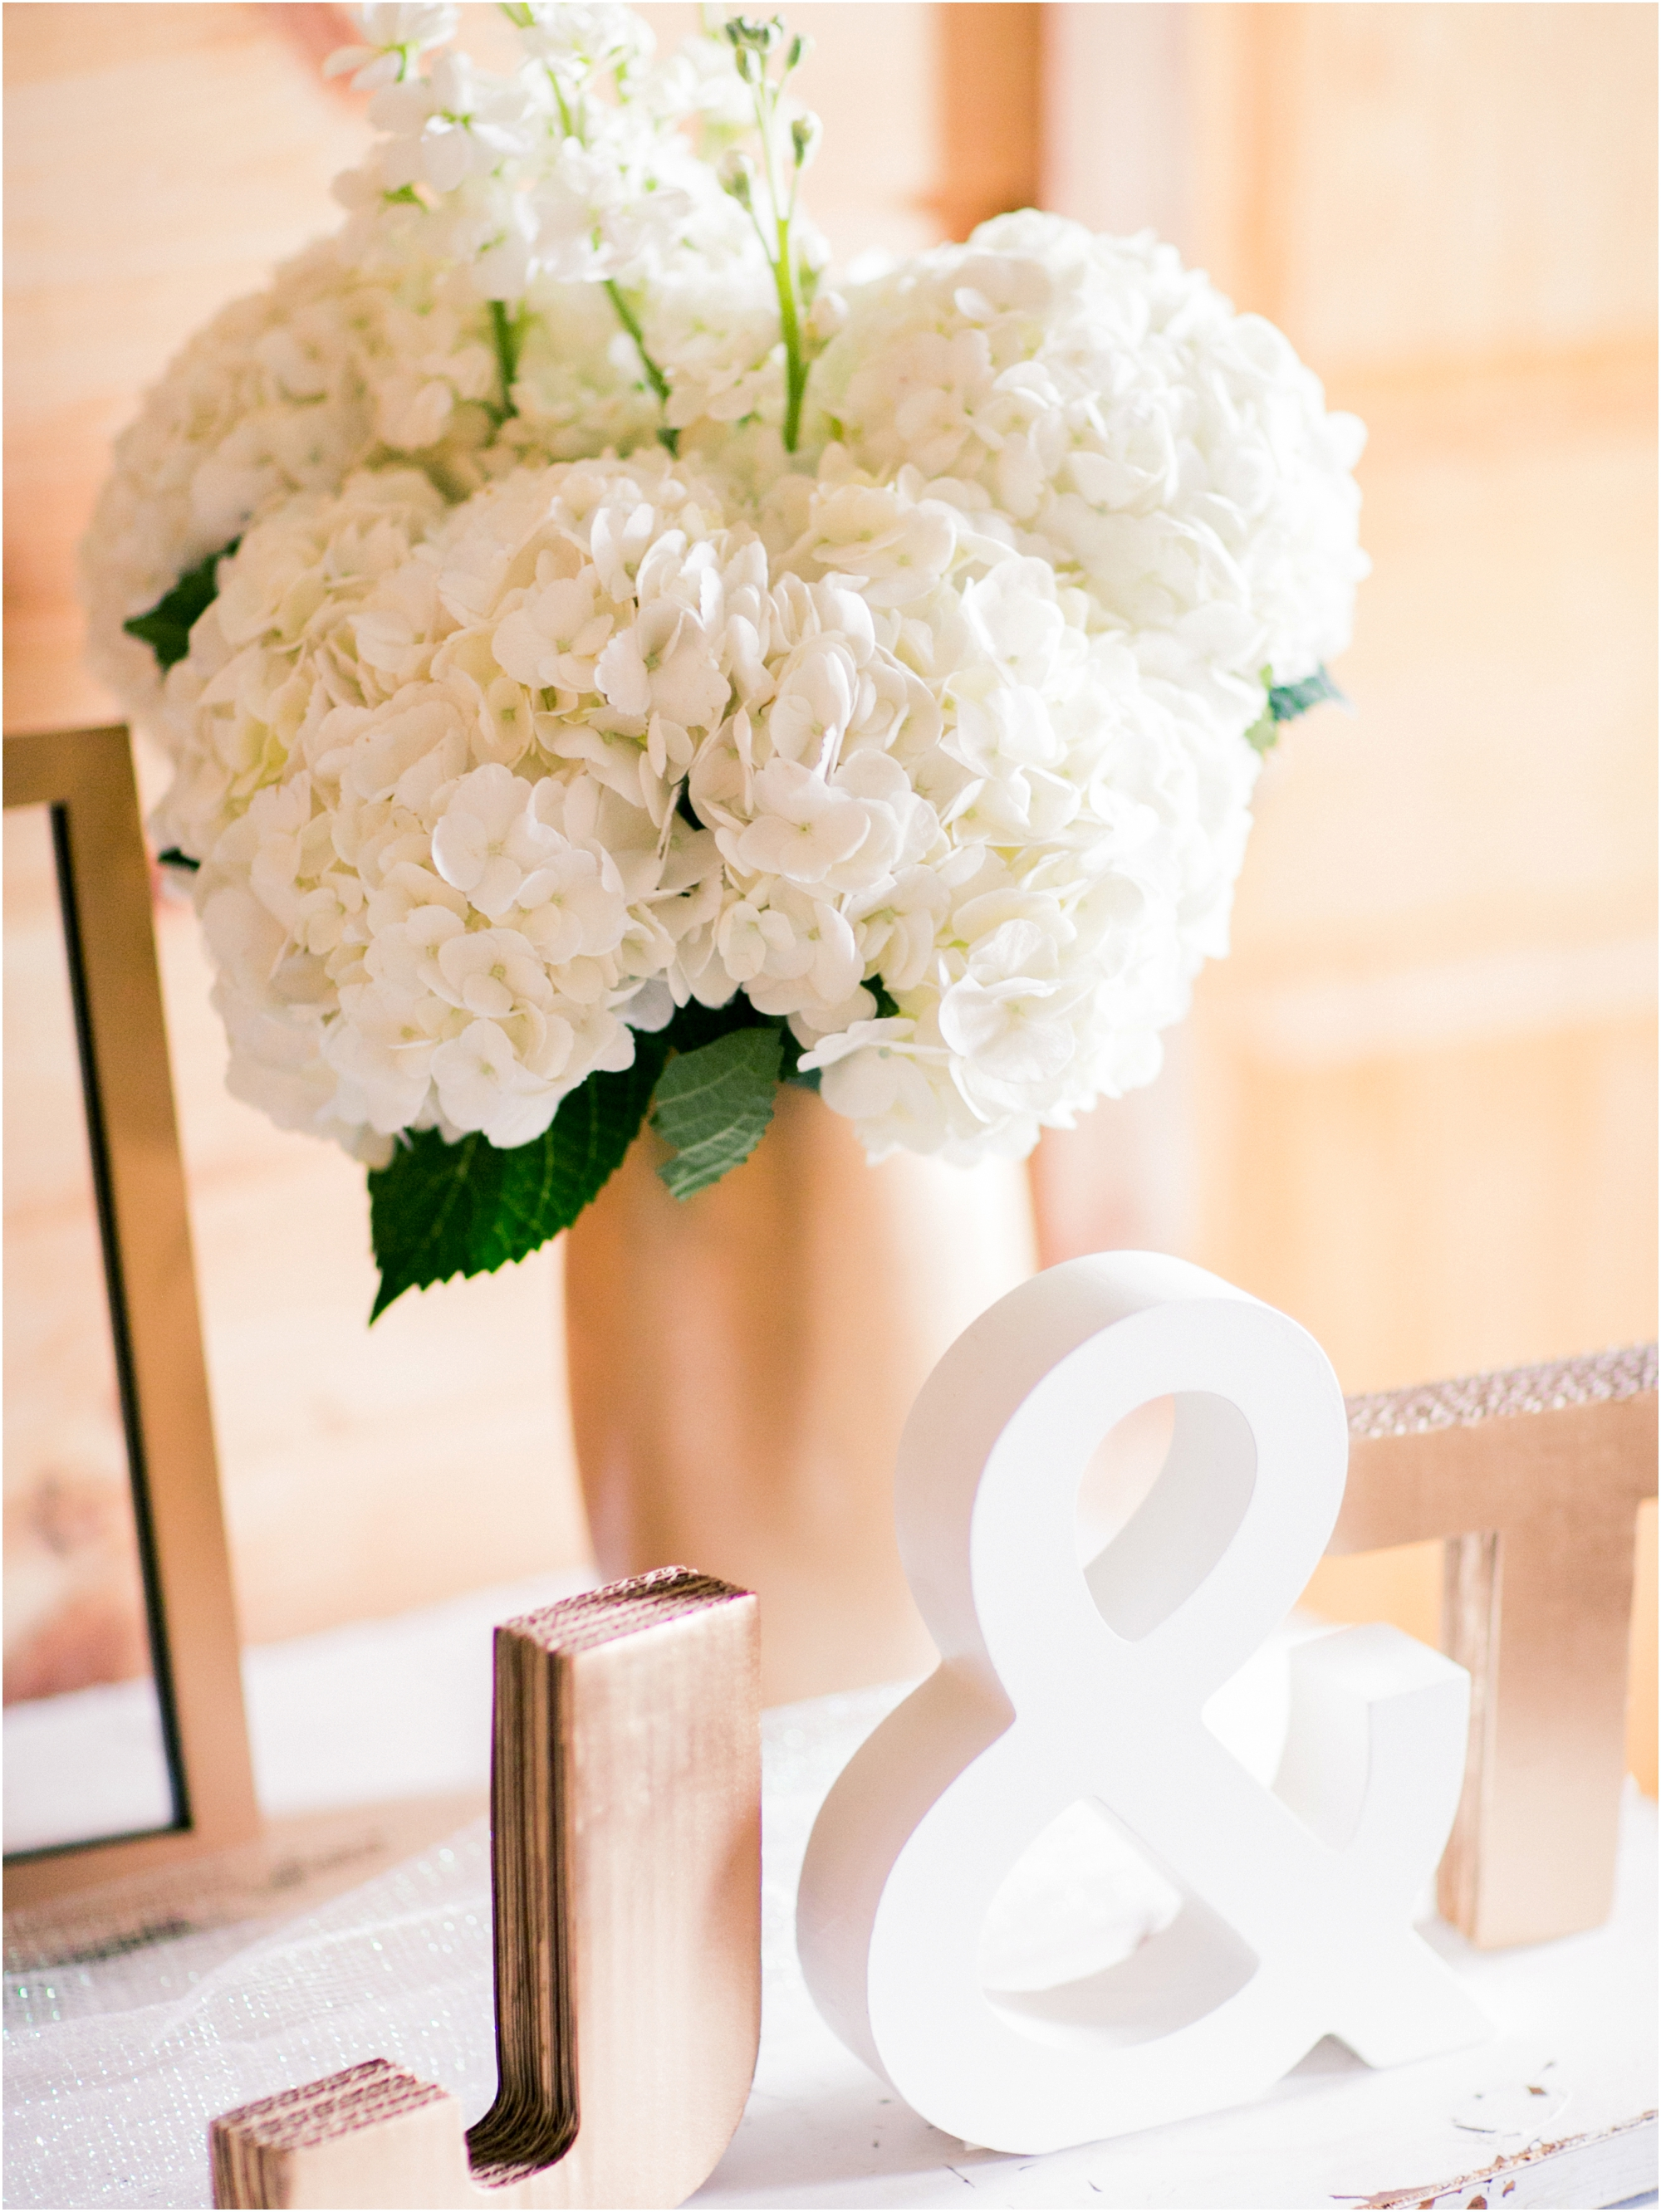 Reception Details at Timberline Barn by Jordan Brittley Photography (www.jordanbrittley.com)